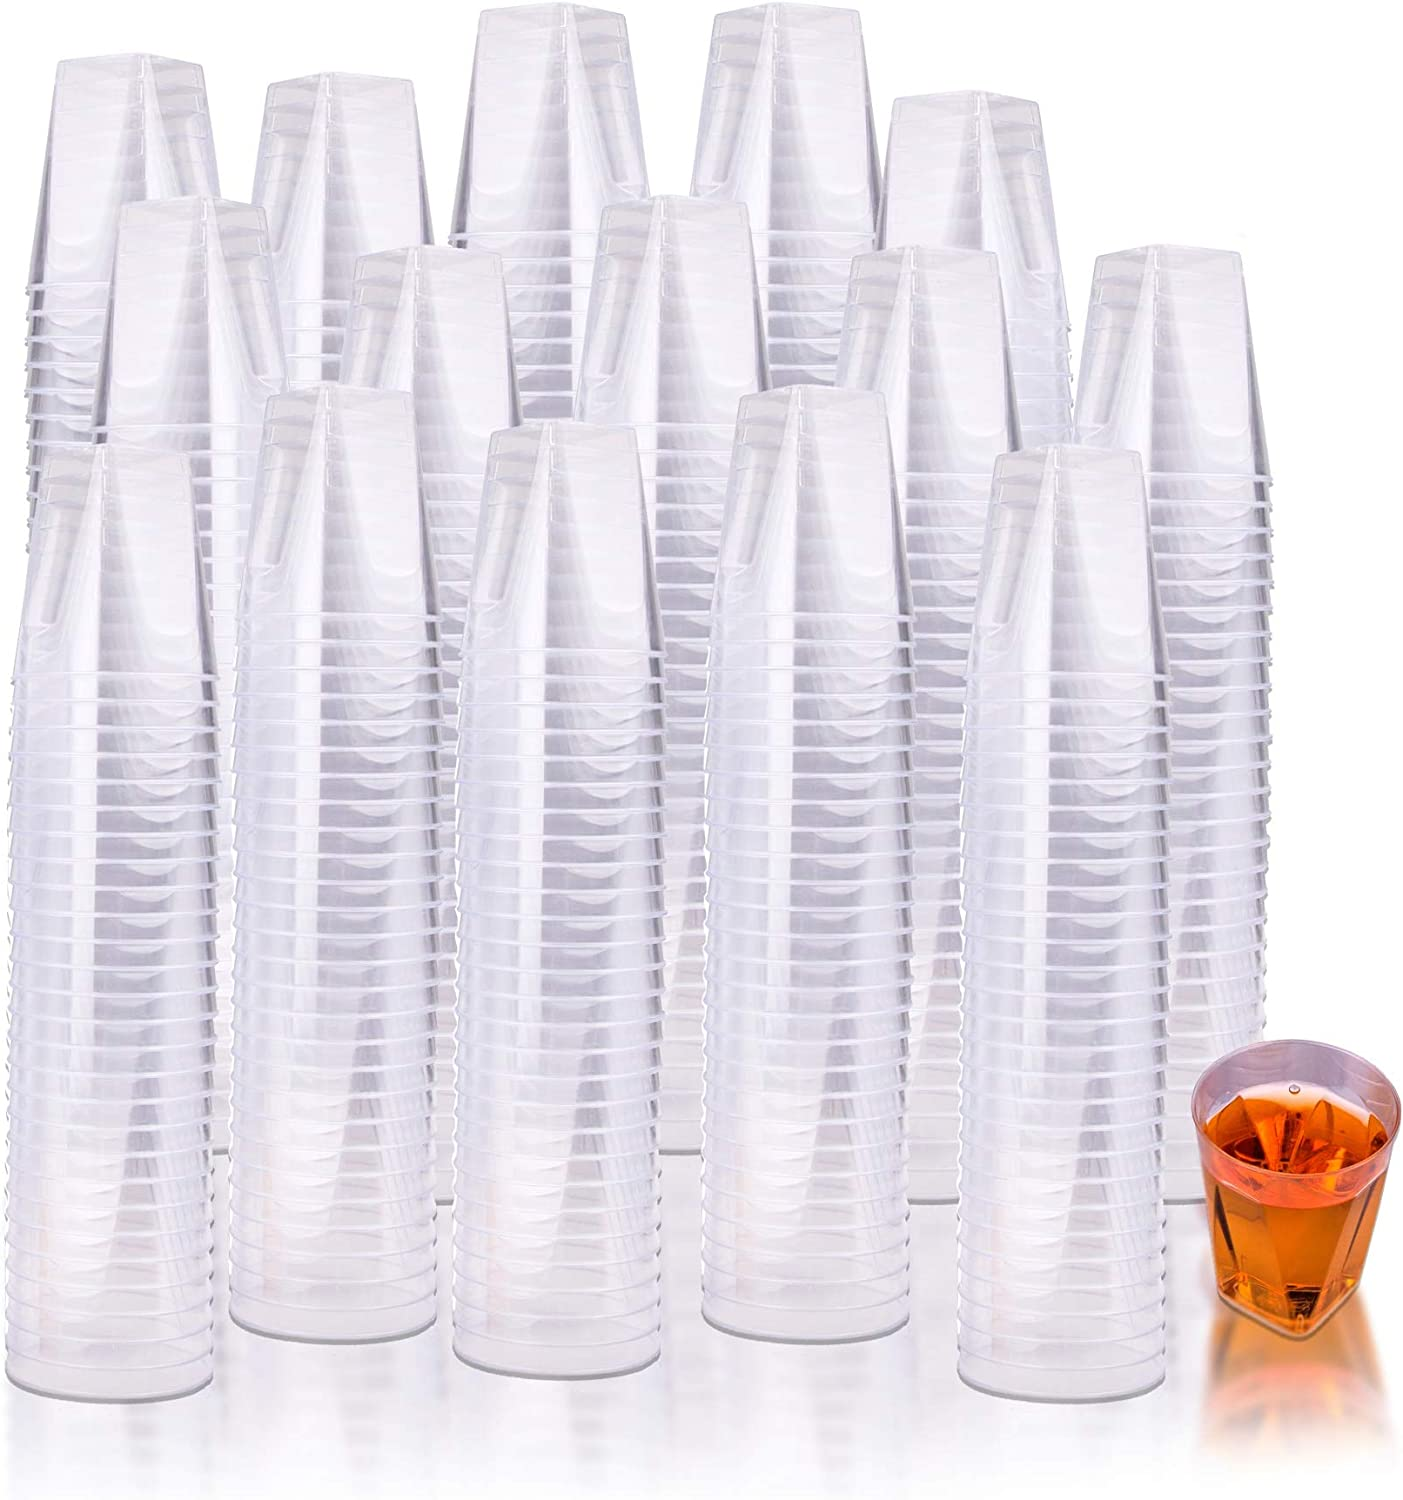 Fete Clear Hard Plastic Shot Glasses 400 Count 2 oz. Reusable and Disposable Shot Cups Perfect Party and Sampling Cups for Drinks, Tastings, Sauces, Dips, Finger Foods, Jelly Shooters 2oz. 400ct.